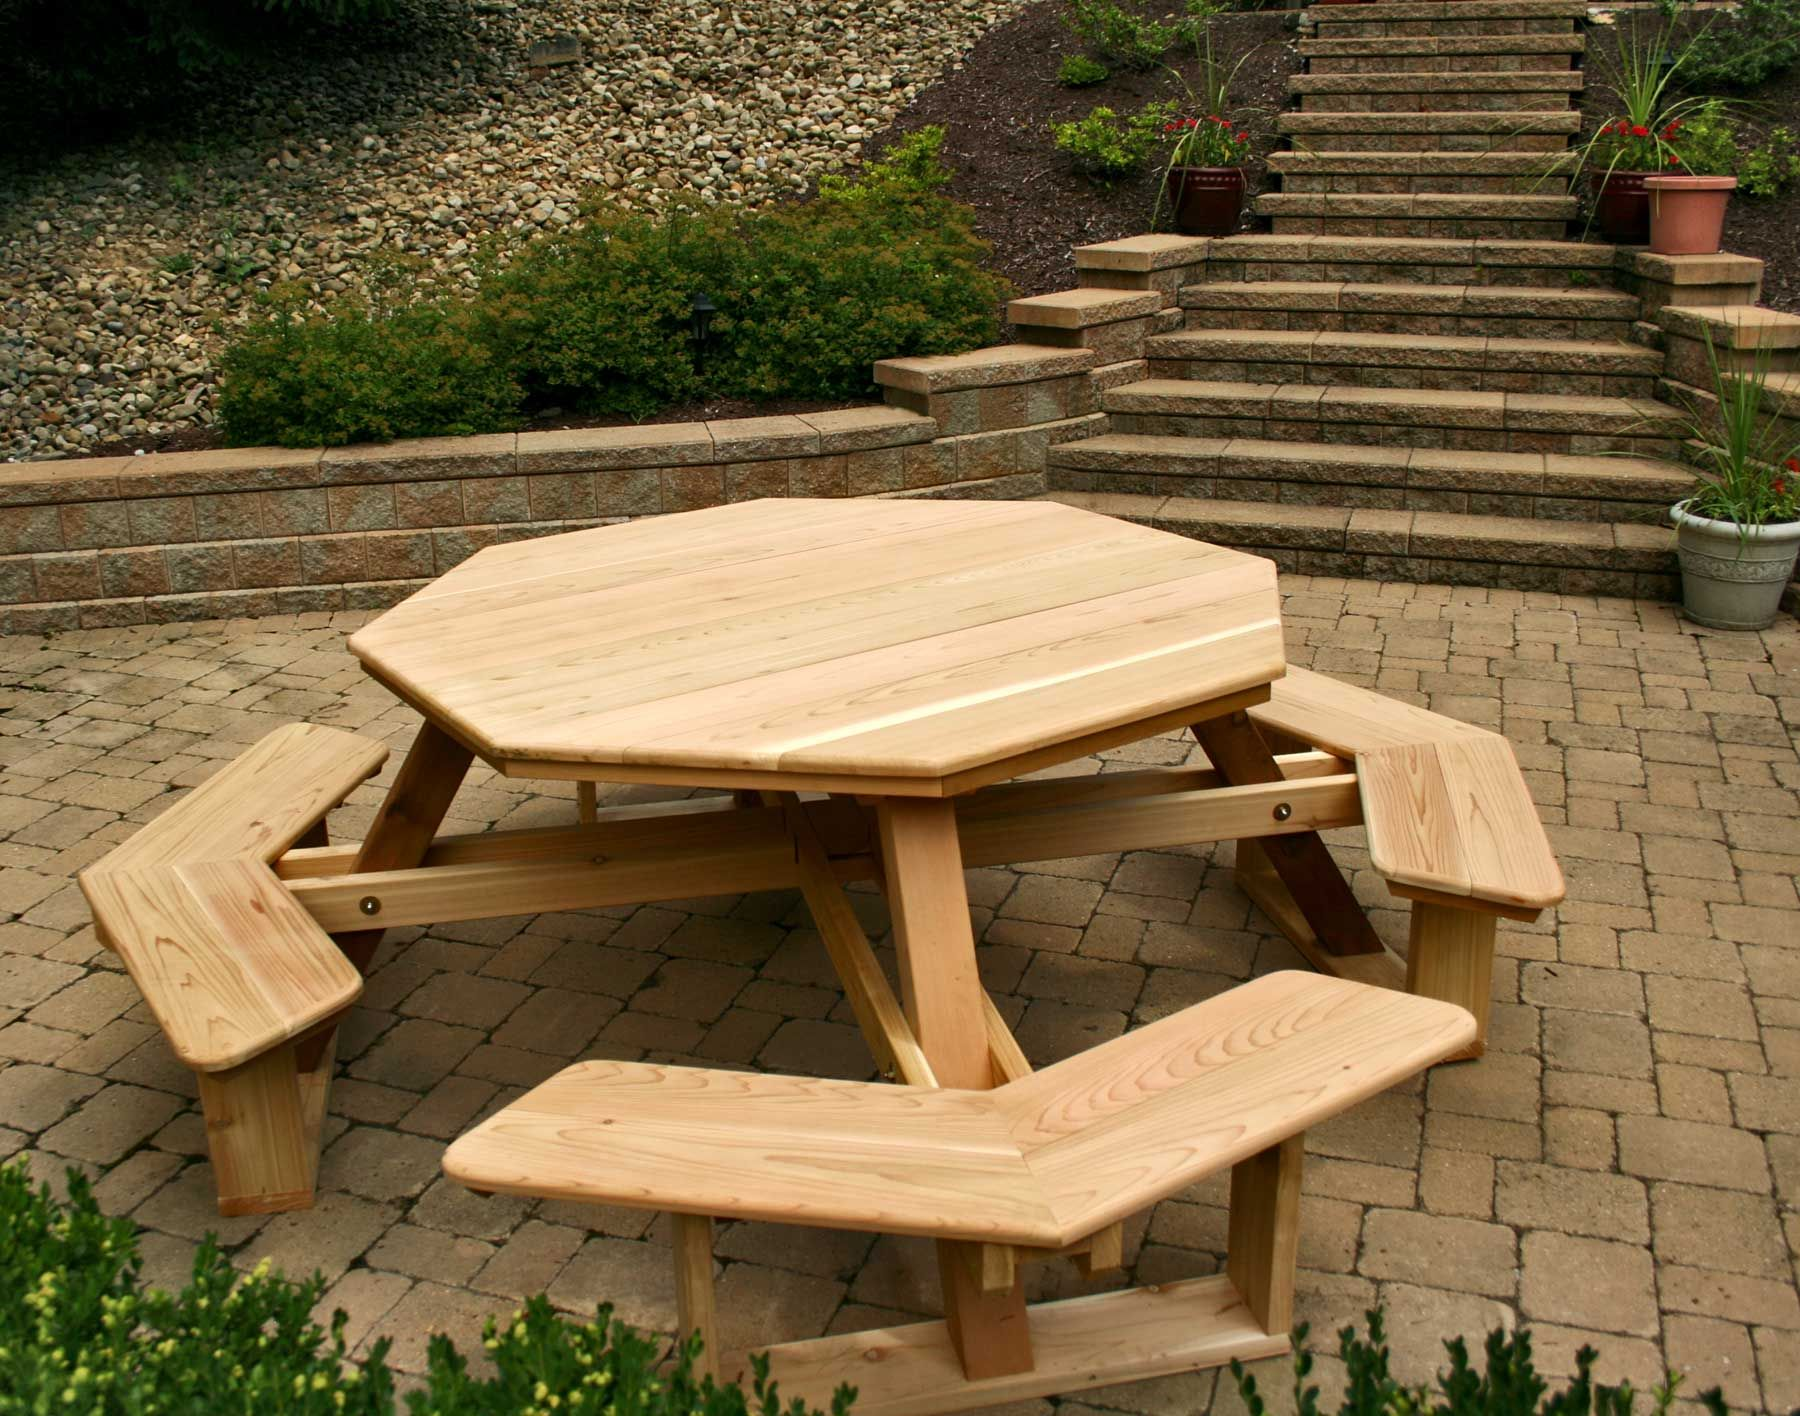 Furniture Hexagon Table Picnic Table Plans With Separate Benches Walk In Convertible Park Bench